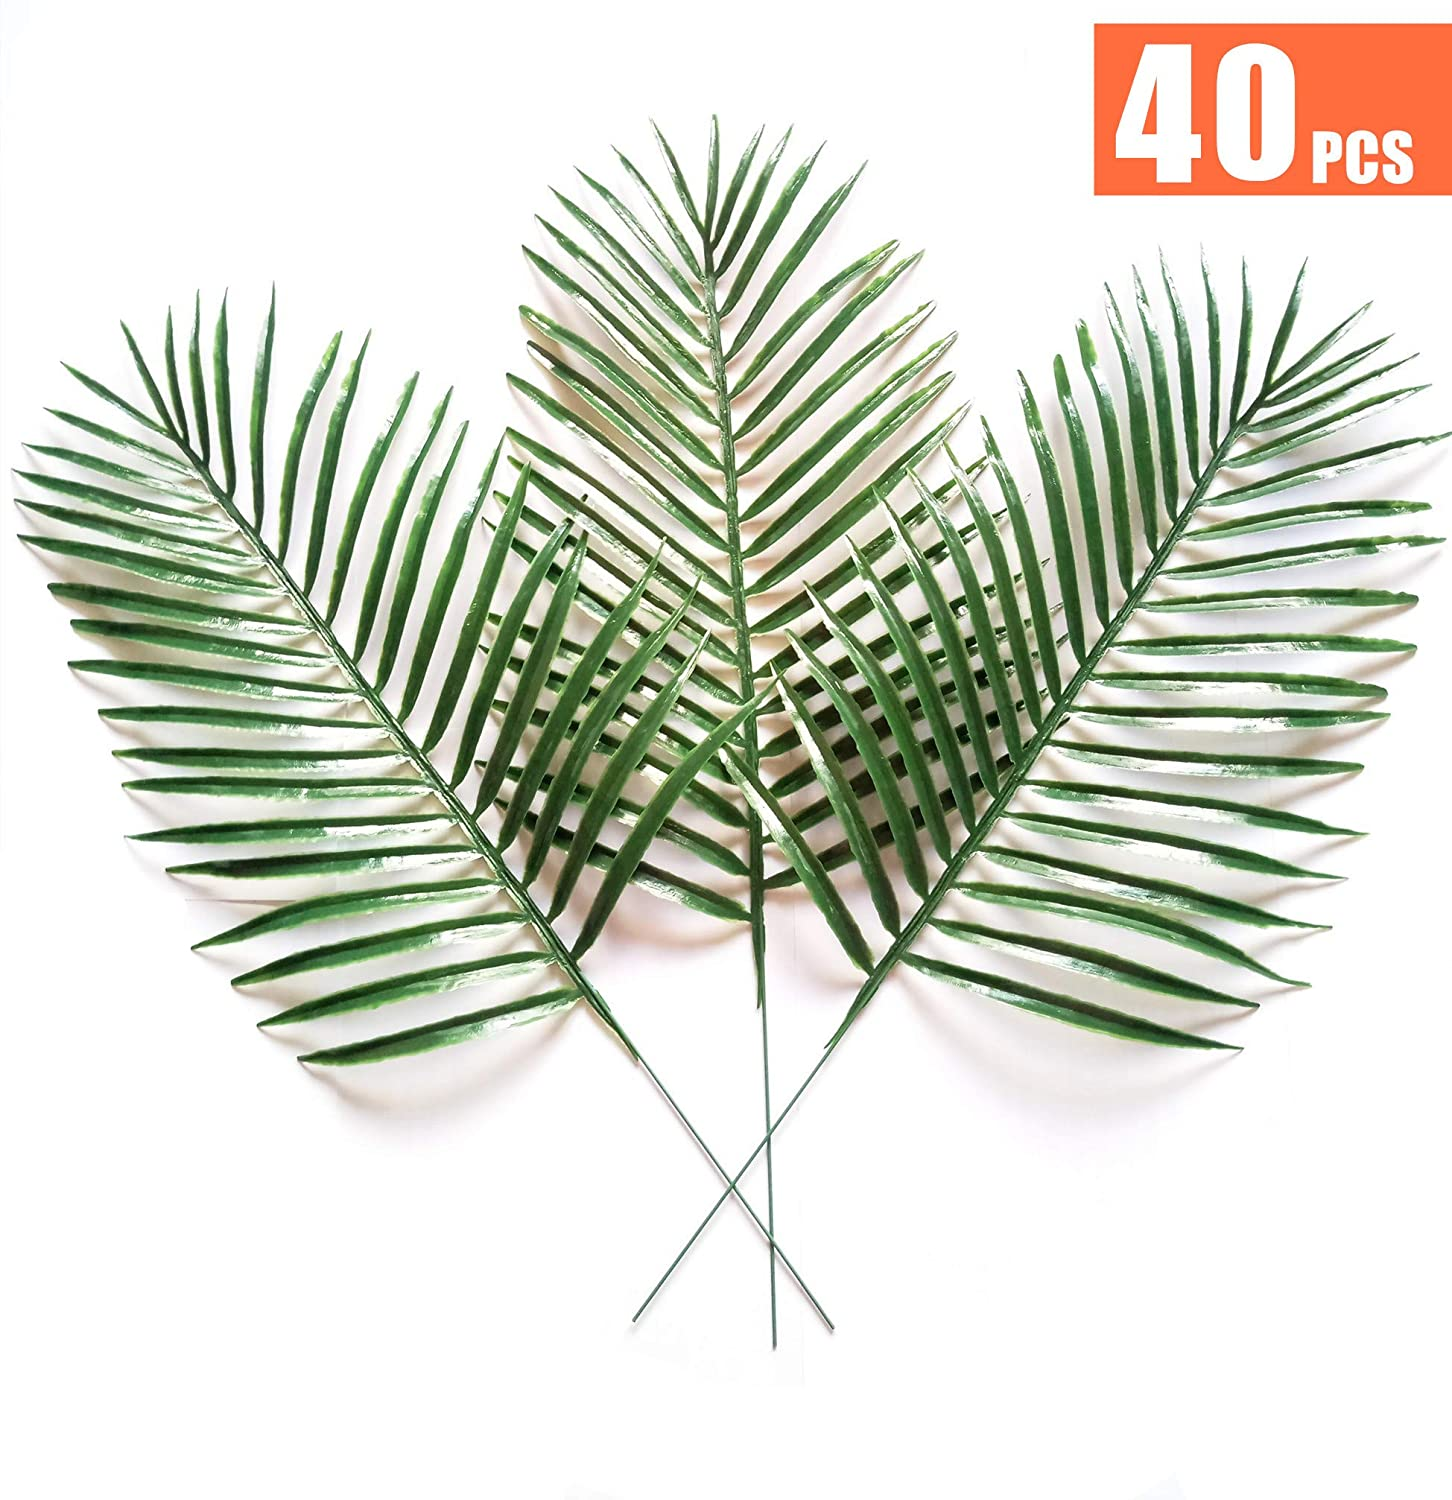 40pcs Artificial Simulated Tropical Palm Leaves Fake Plants for Handcrafts Home Kitchen Party Decorations XIHAROOM